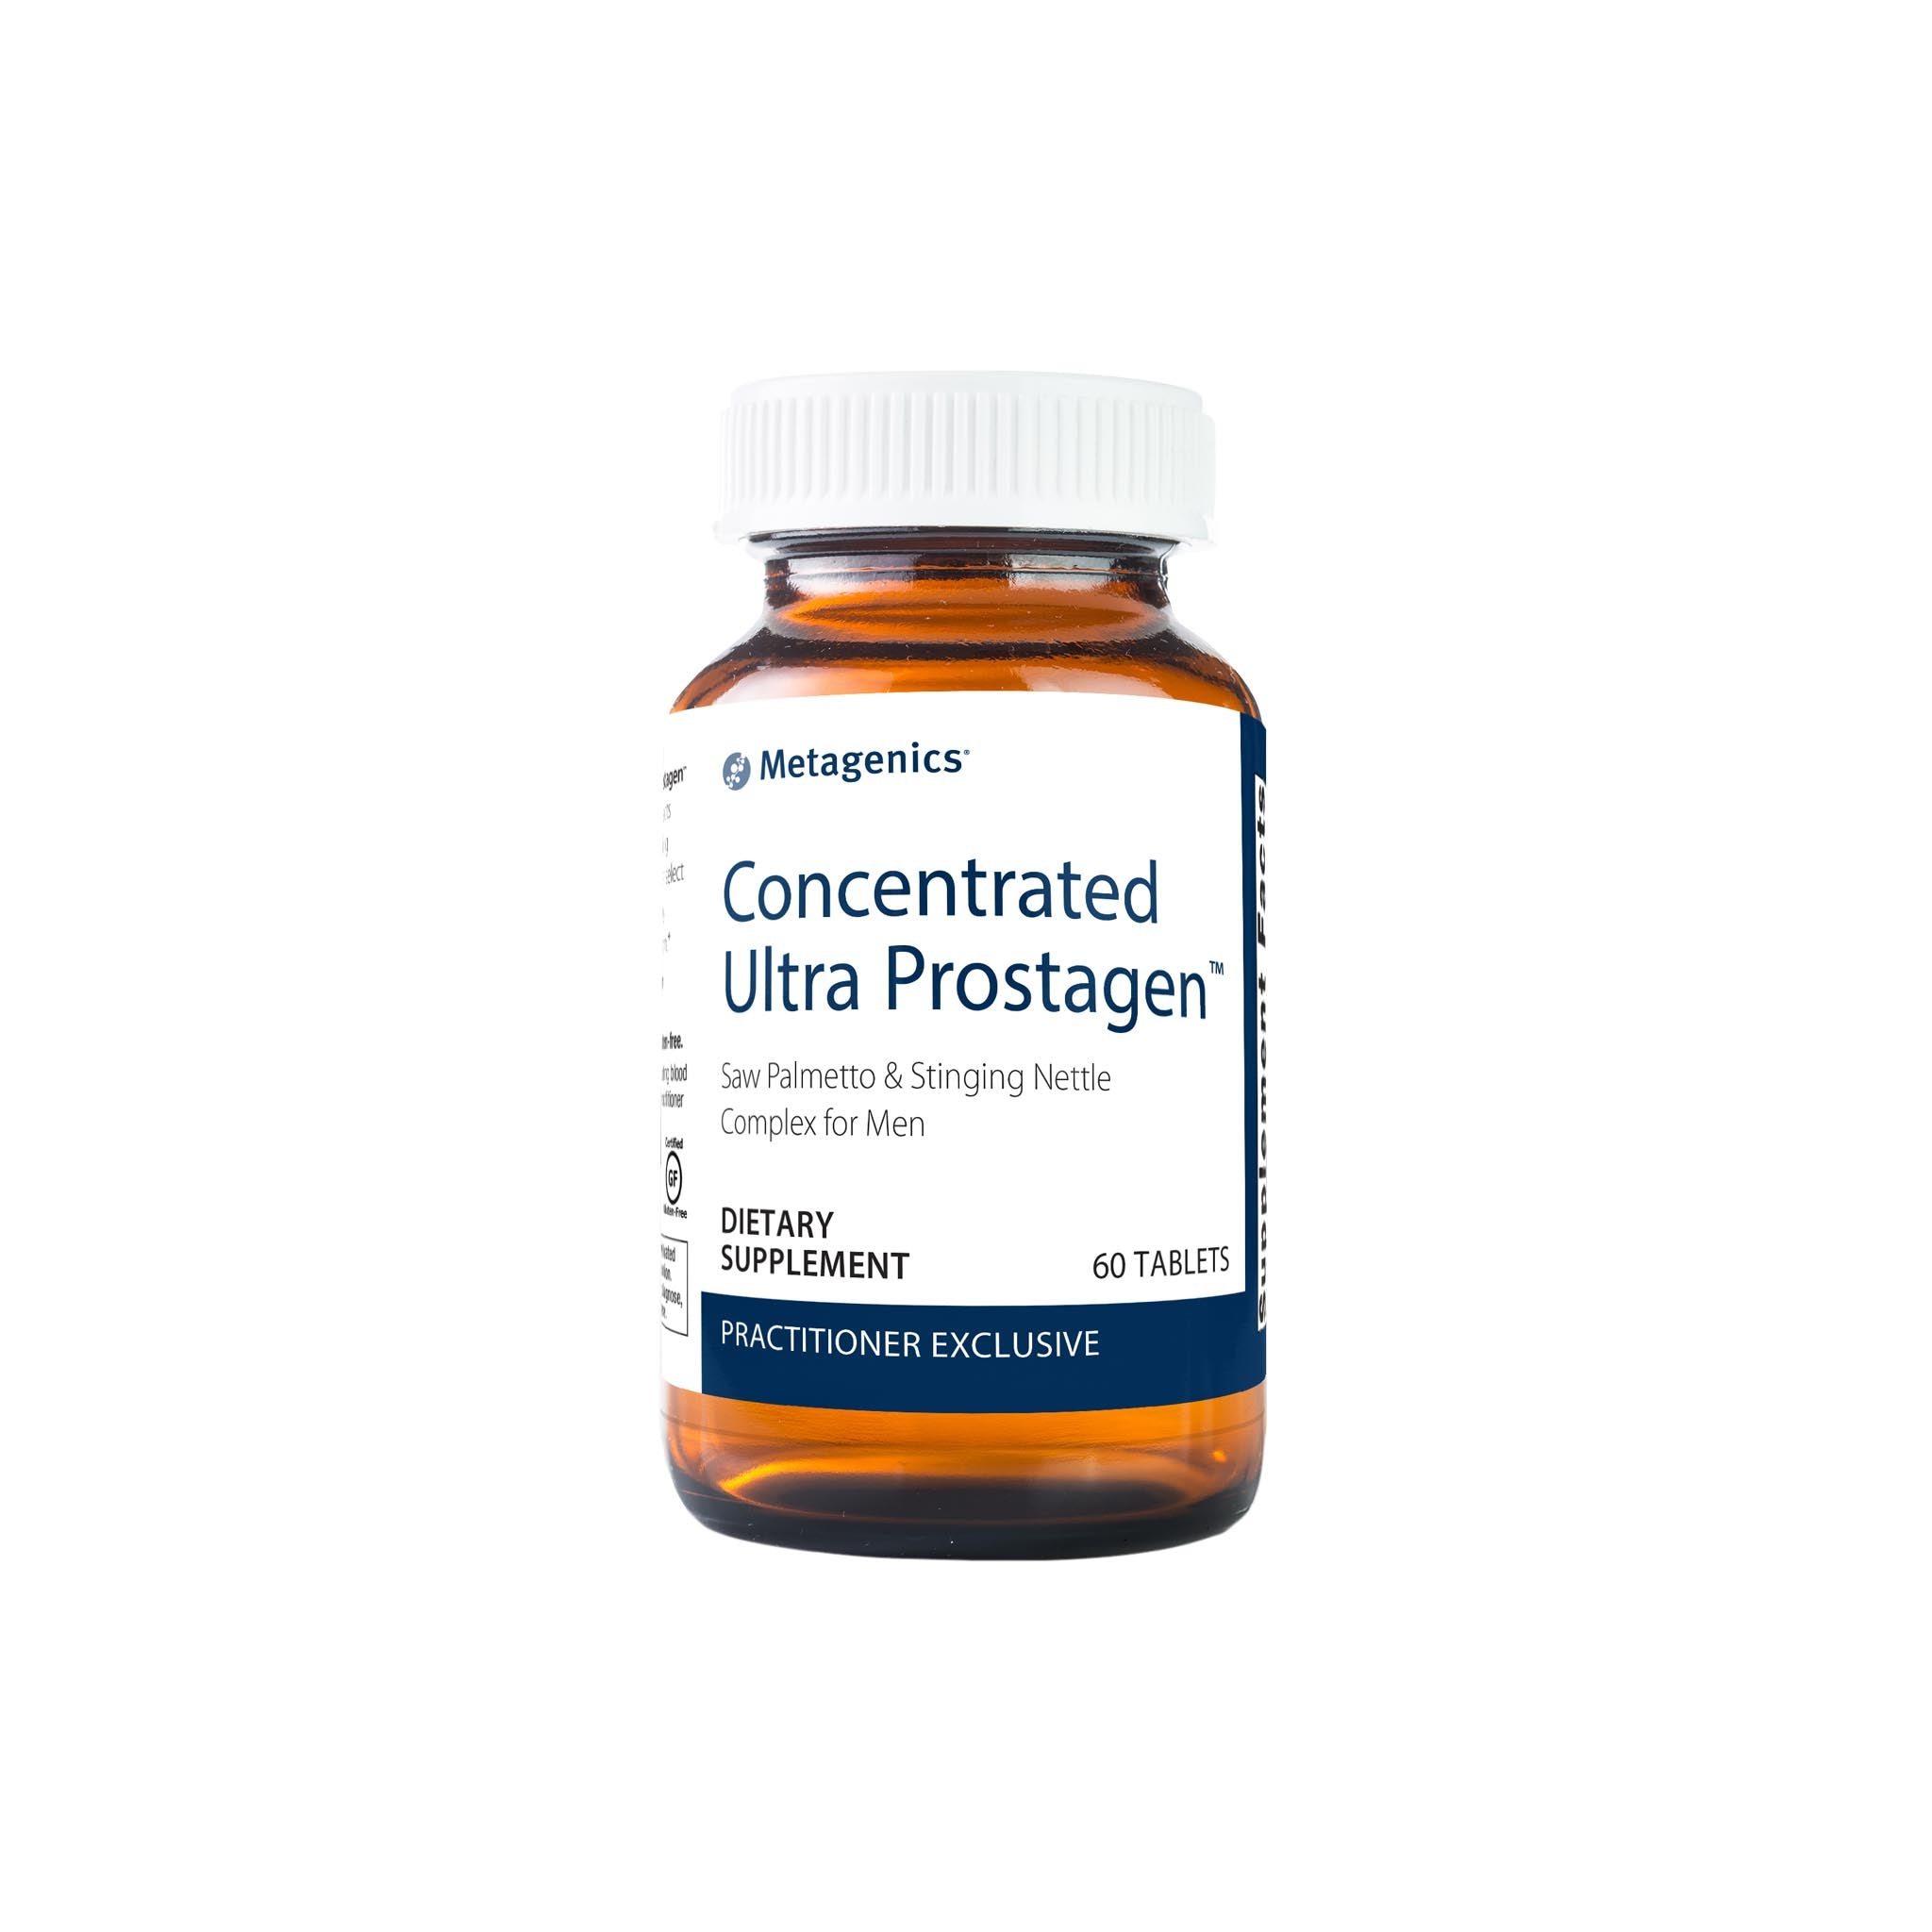 Metagenics Concentrated Ultra Prostagen - Metagenics | Energize Health